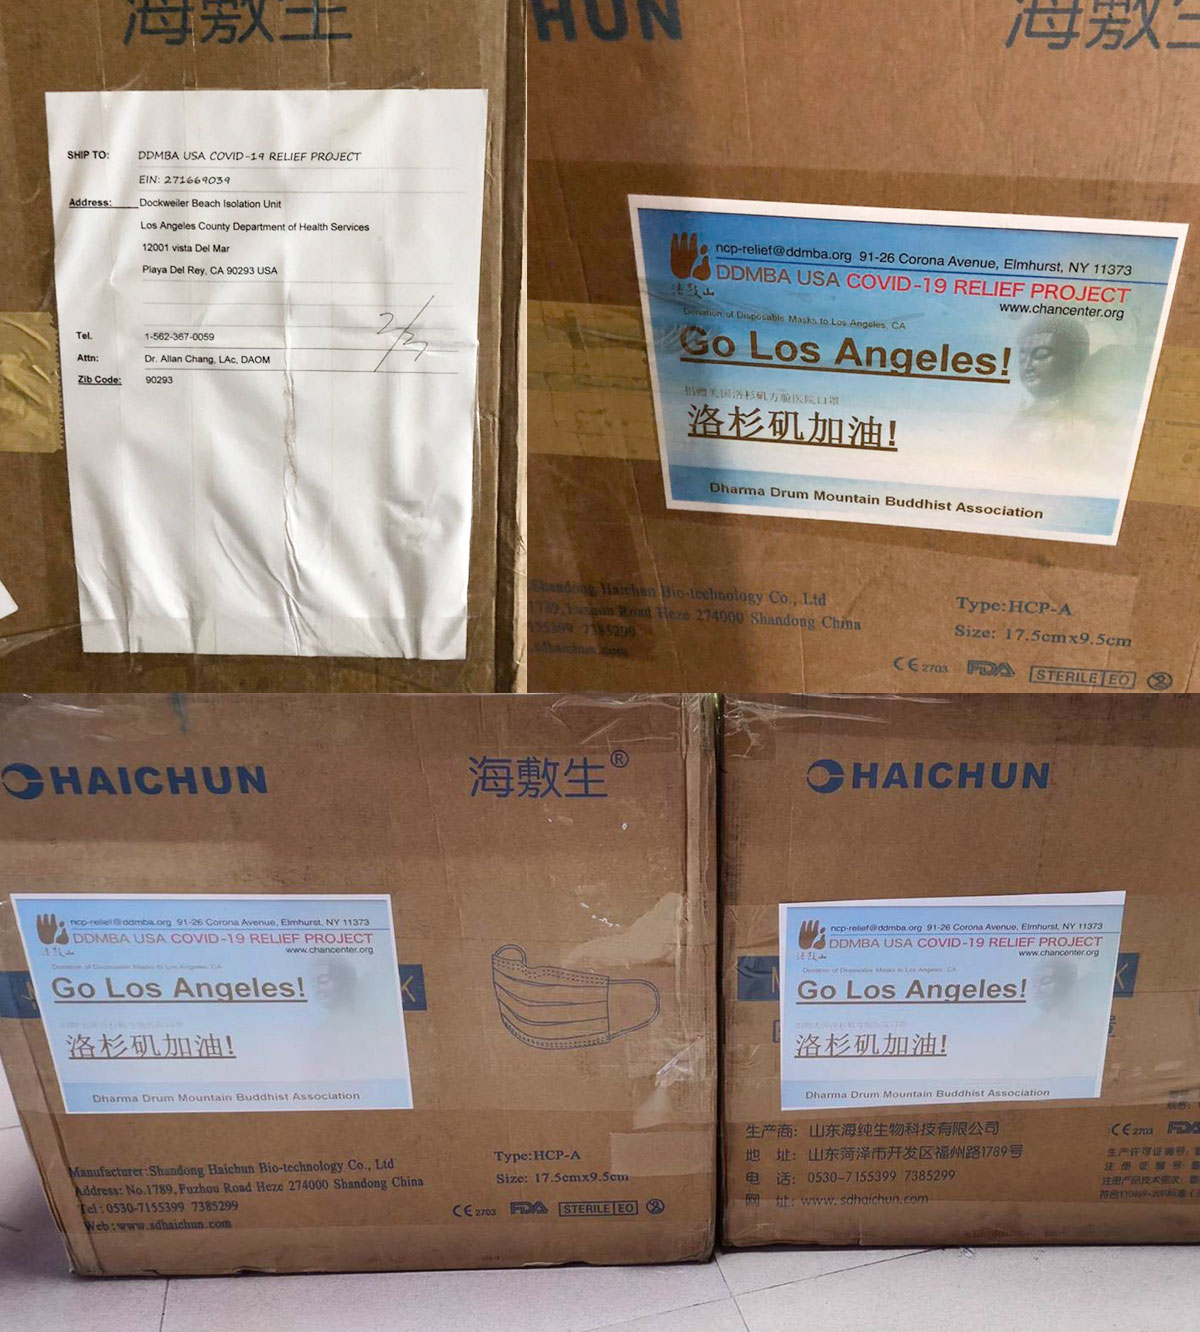 DDMBA USA COVID-19 Relief Project Delivery Report - Los Angeles - Los Angeles Health Service (Isolation Unit)